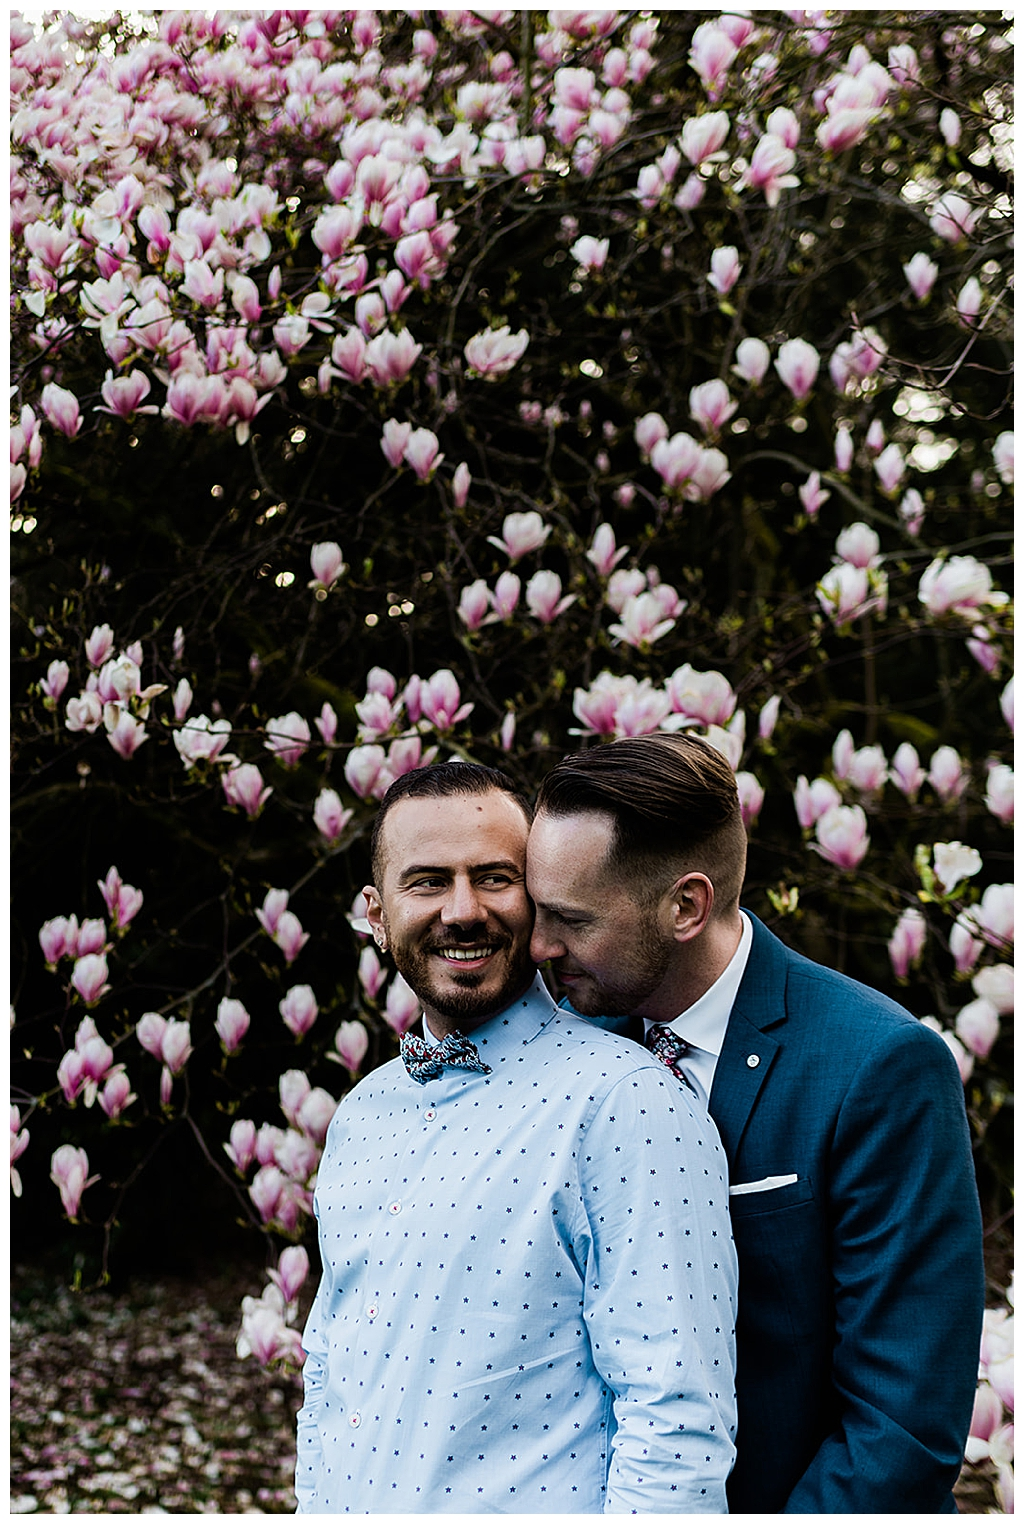 Danny & Matthew | Engagement Love